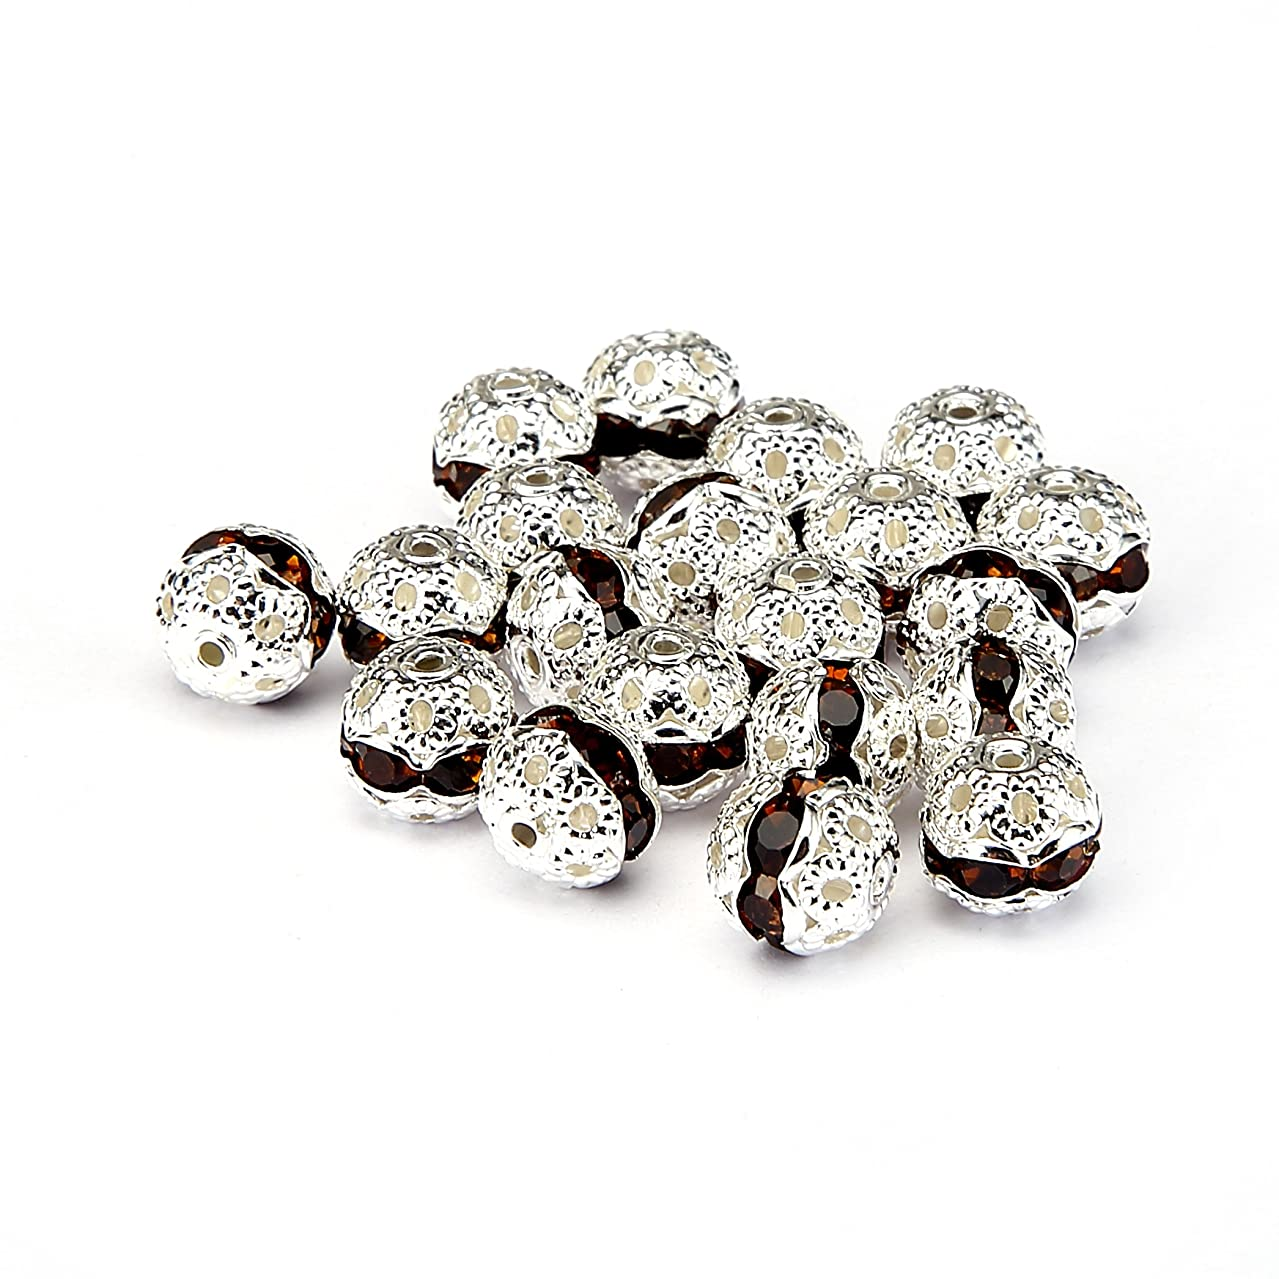 BRCbeads Top Quality 8mm SMOKED TOPAZ Color Metal Style #1 CRYSTAL RHINESTONE BALL Shape SPACER BEADS Silver Plated 20pcs Per Bag For Jewelry Making